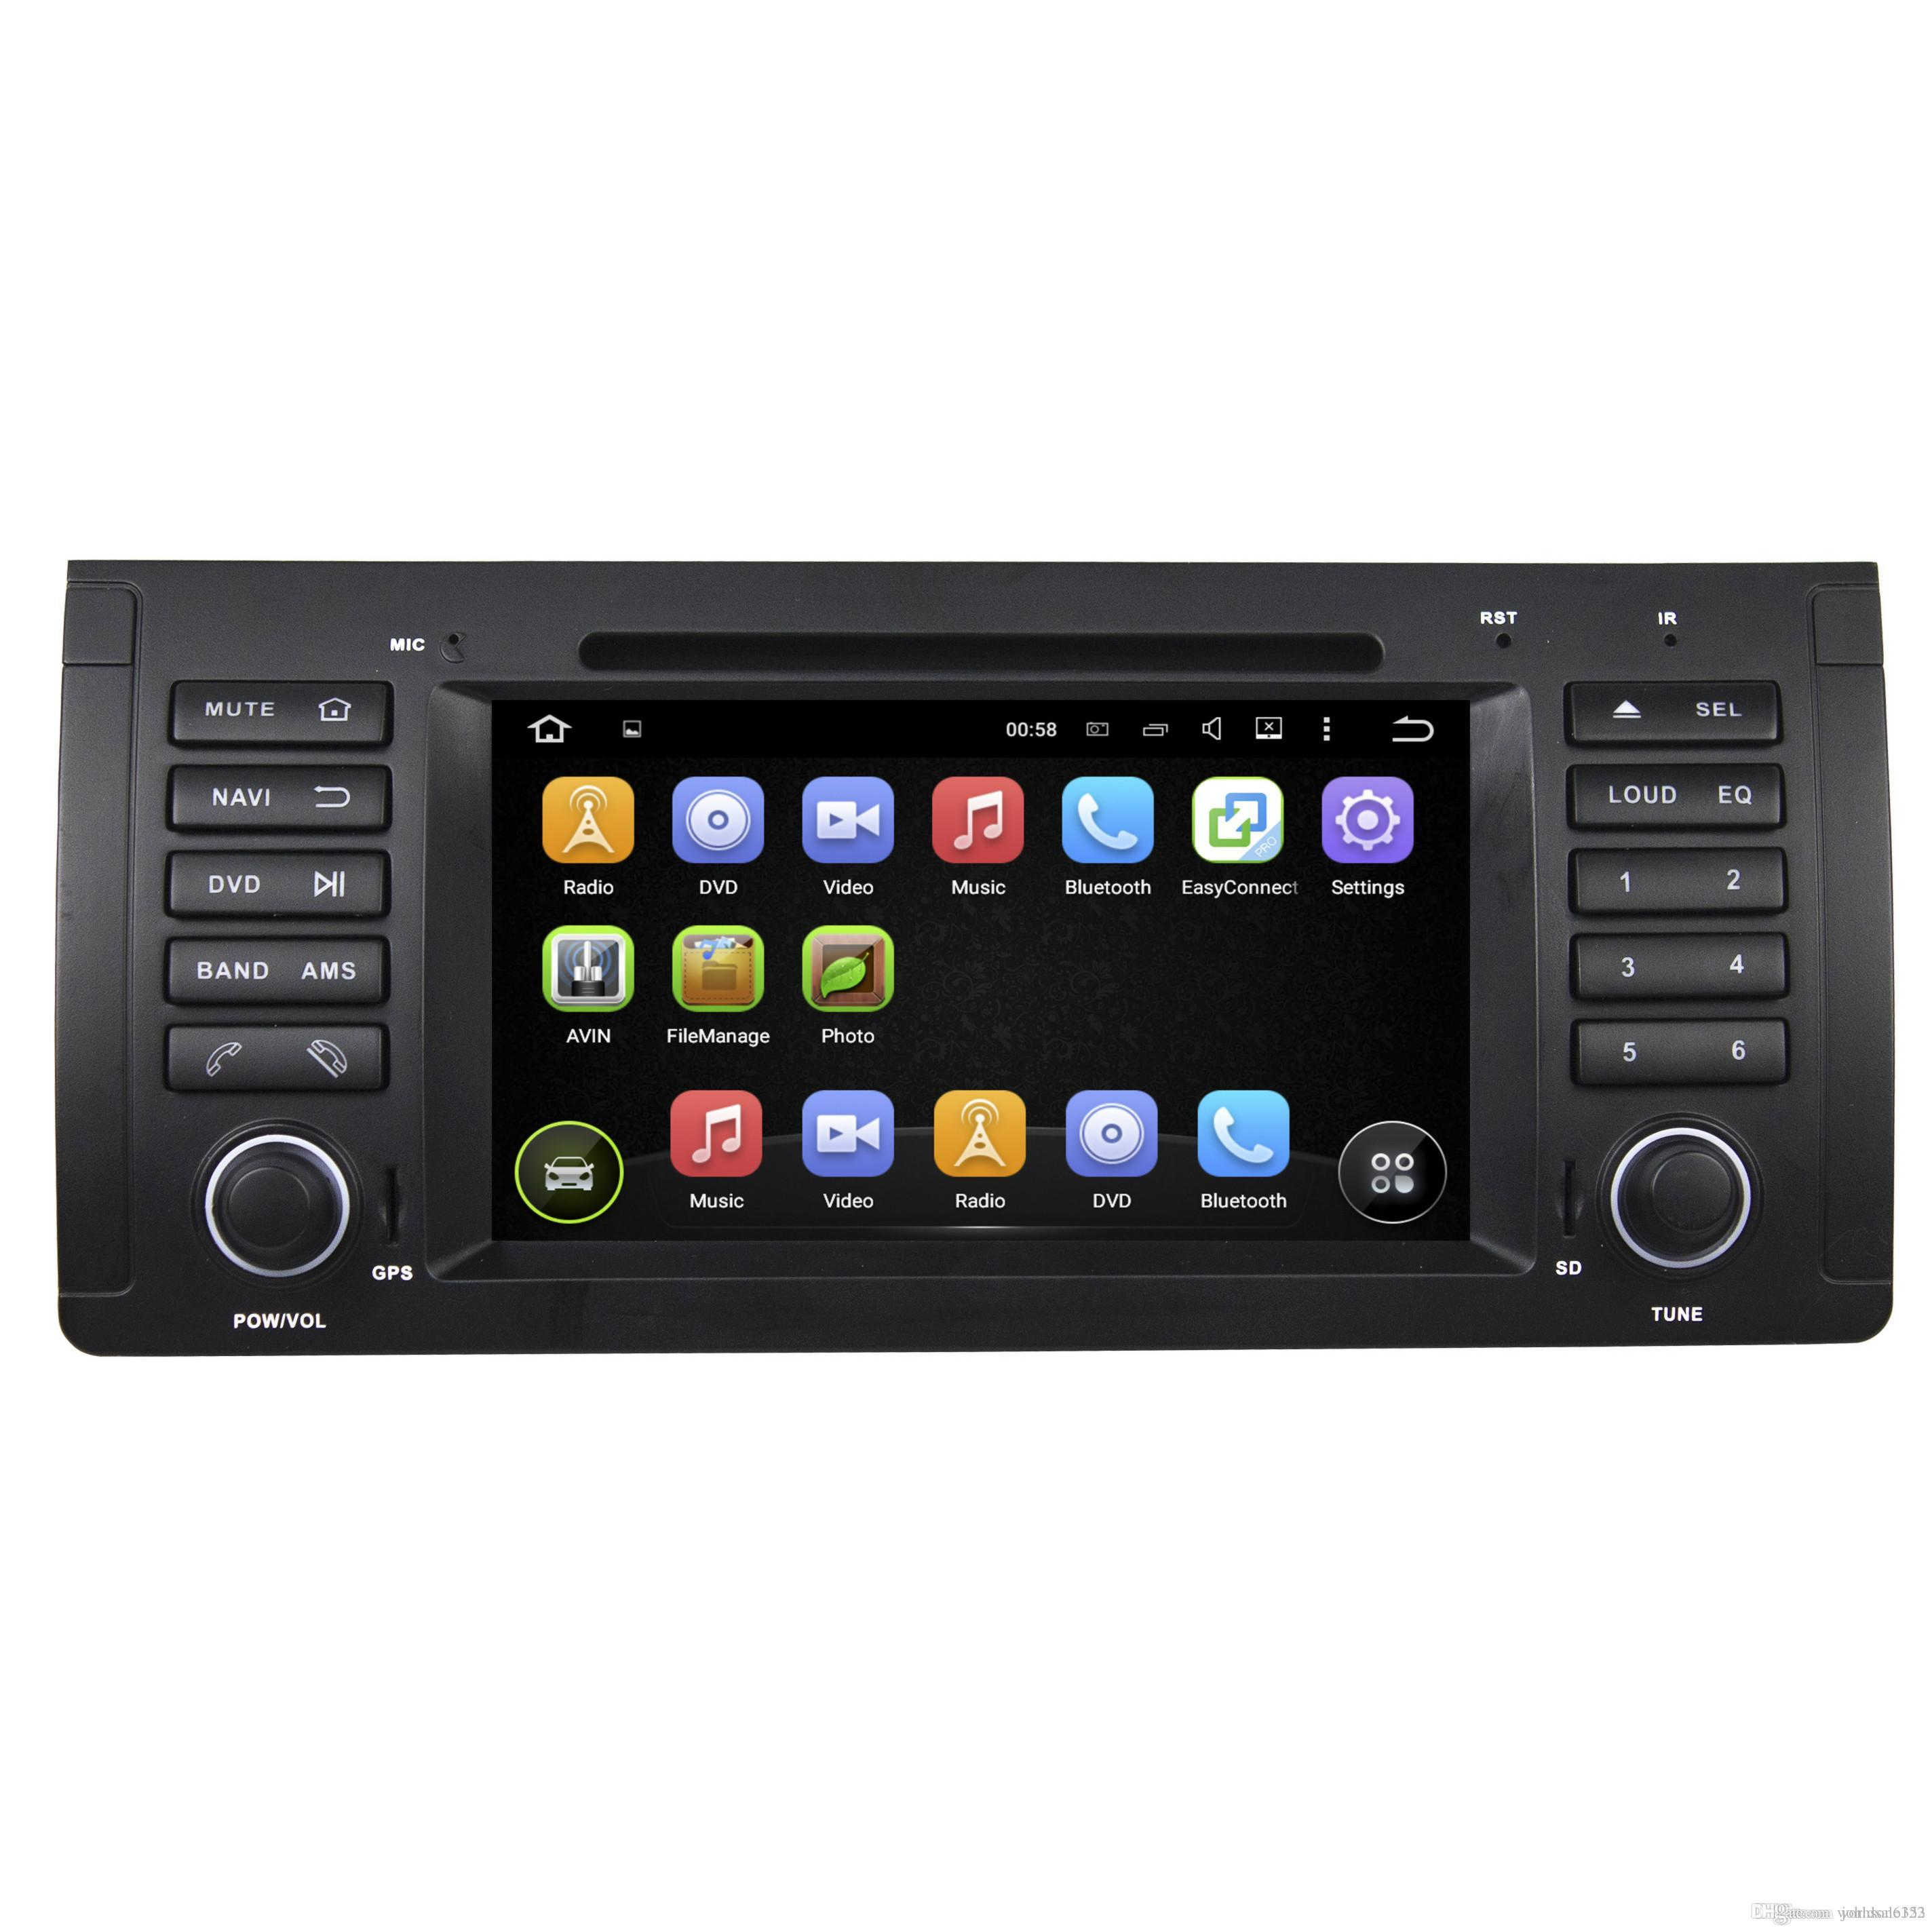 Car Multimedia 2 Din Android7.1 System Car PC In Car Dvd Player Quad Core  For BMW E39 Central Multimedia Navigation System RDS Radio HD Vide Dual  Screen In ...